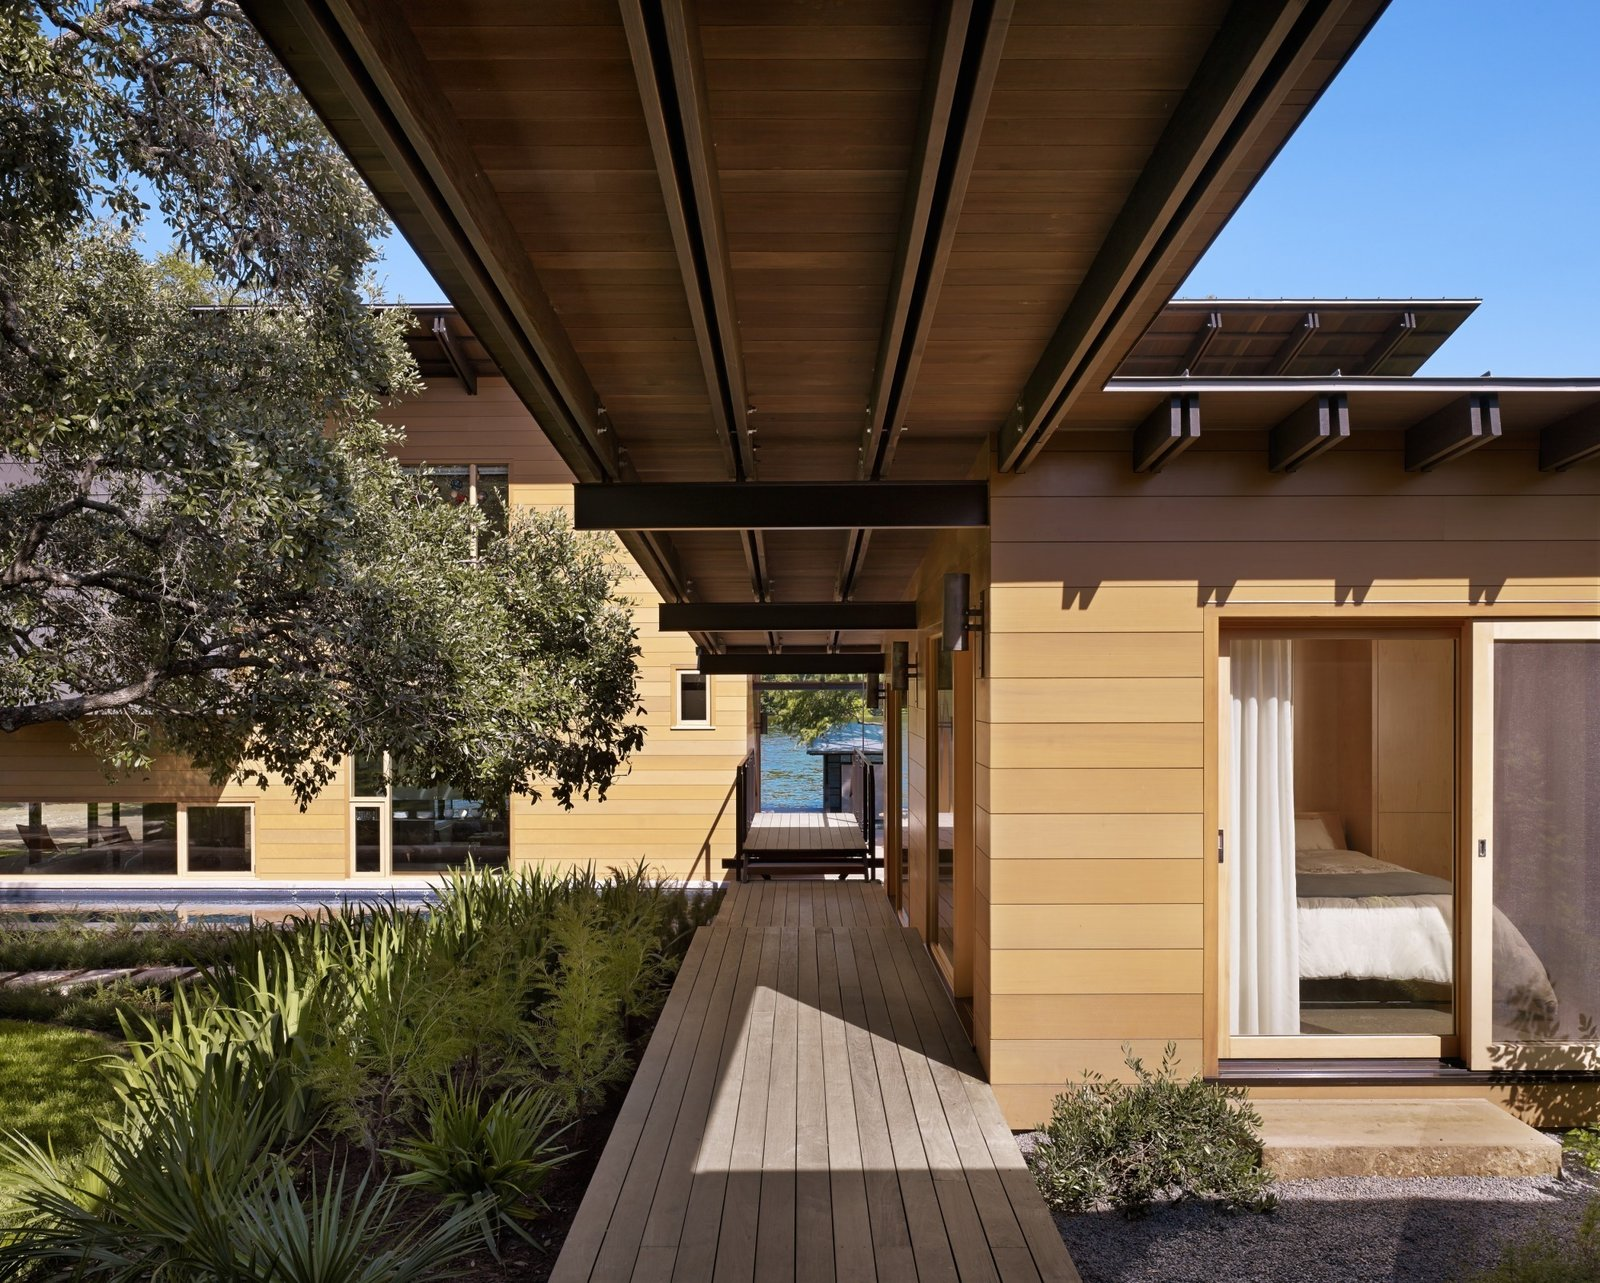 """""""The unique site-plan includes the main house, a two-story dog run, and a guest cabin,"""" Flato says. """"All are seamlessly stitched together by a grand boardwalk, making an arrival by boat or by car an equally engaging experience."""" Vertical grain Western red cedar acts as the exterior siding. Tagged: Outdoor, Wood Patio, Porch, Deck, Walkways, and Back Yard.  Hog Pen Creek by Kelly Dawson"""